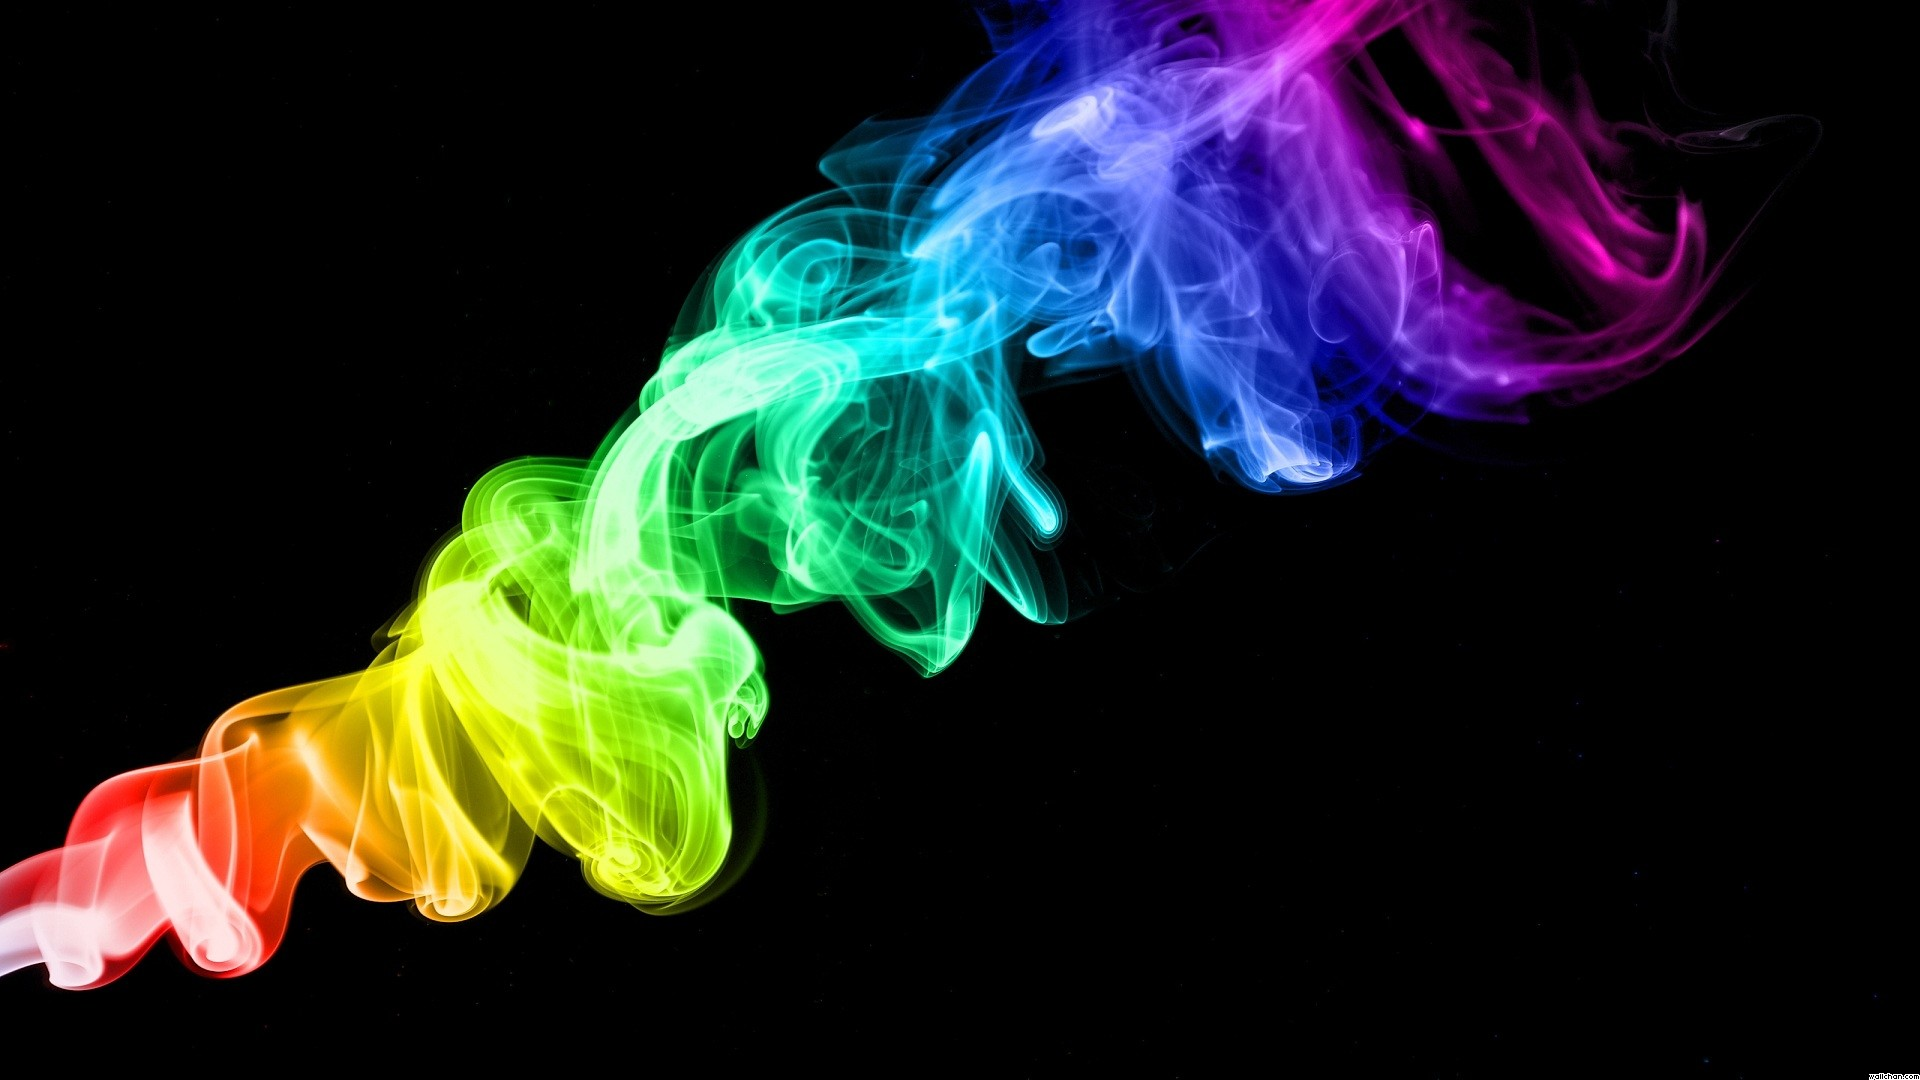 Res: 1920x1080, Smoke Rainbow Color Wallpaper Free